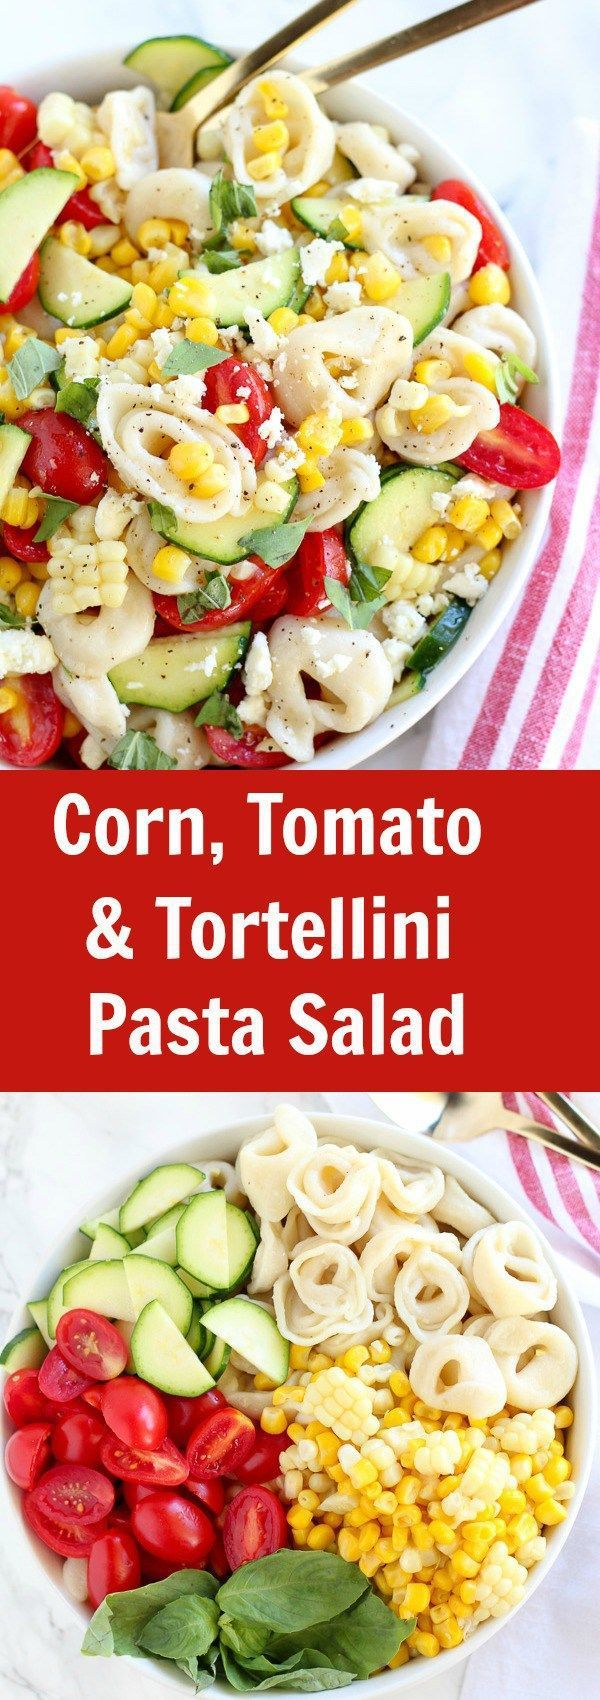 Summer Corn Tomato and Tortellini Pasta Salad